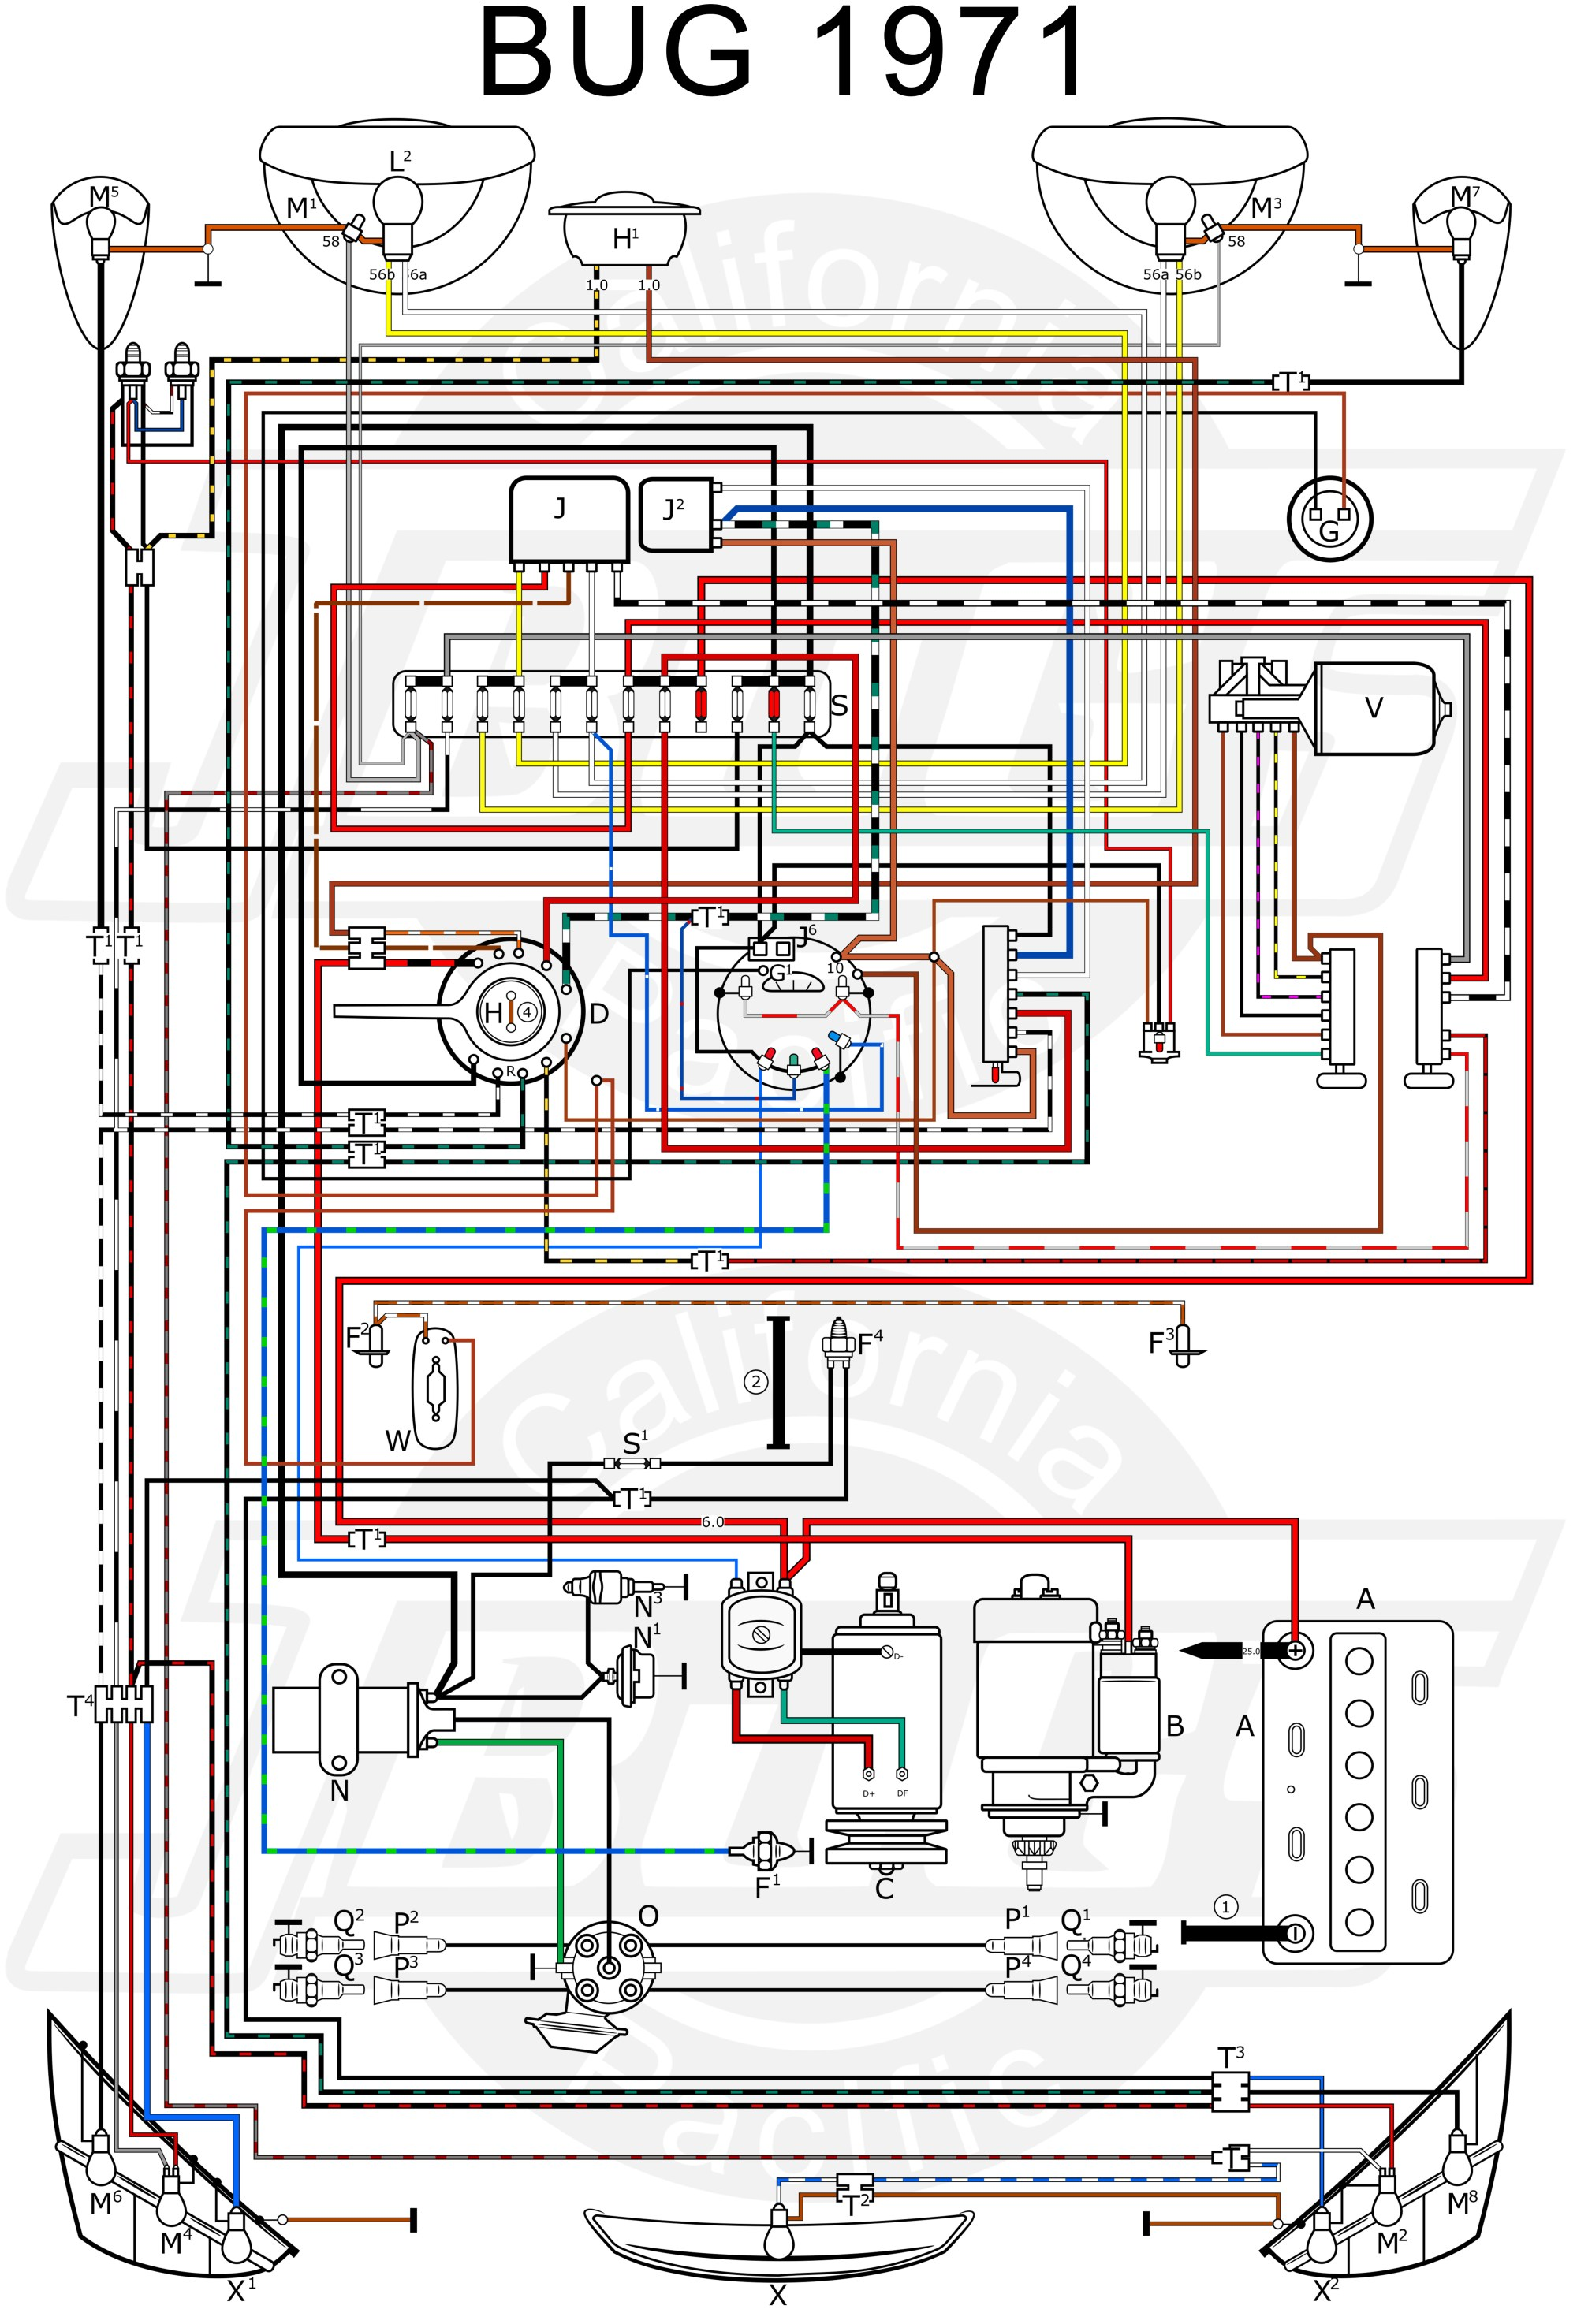 hight resolution of 1979 vw beetle wiring diagram wiring diagram ver1979 vw super beetle wiring diagram wiring diagram sheet